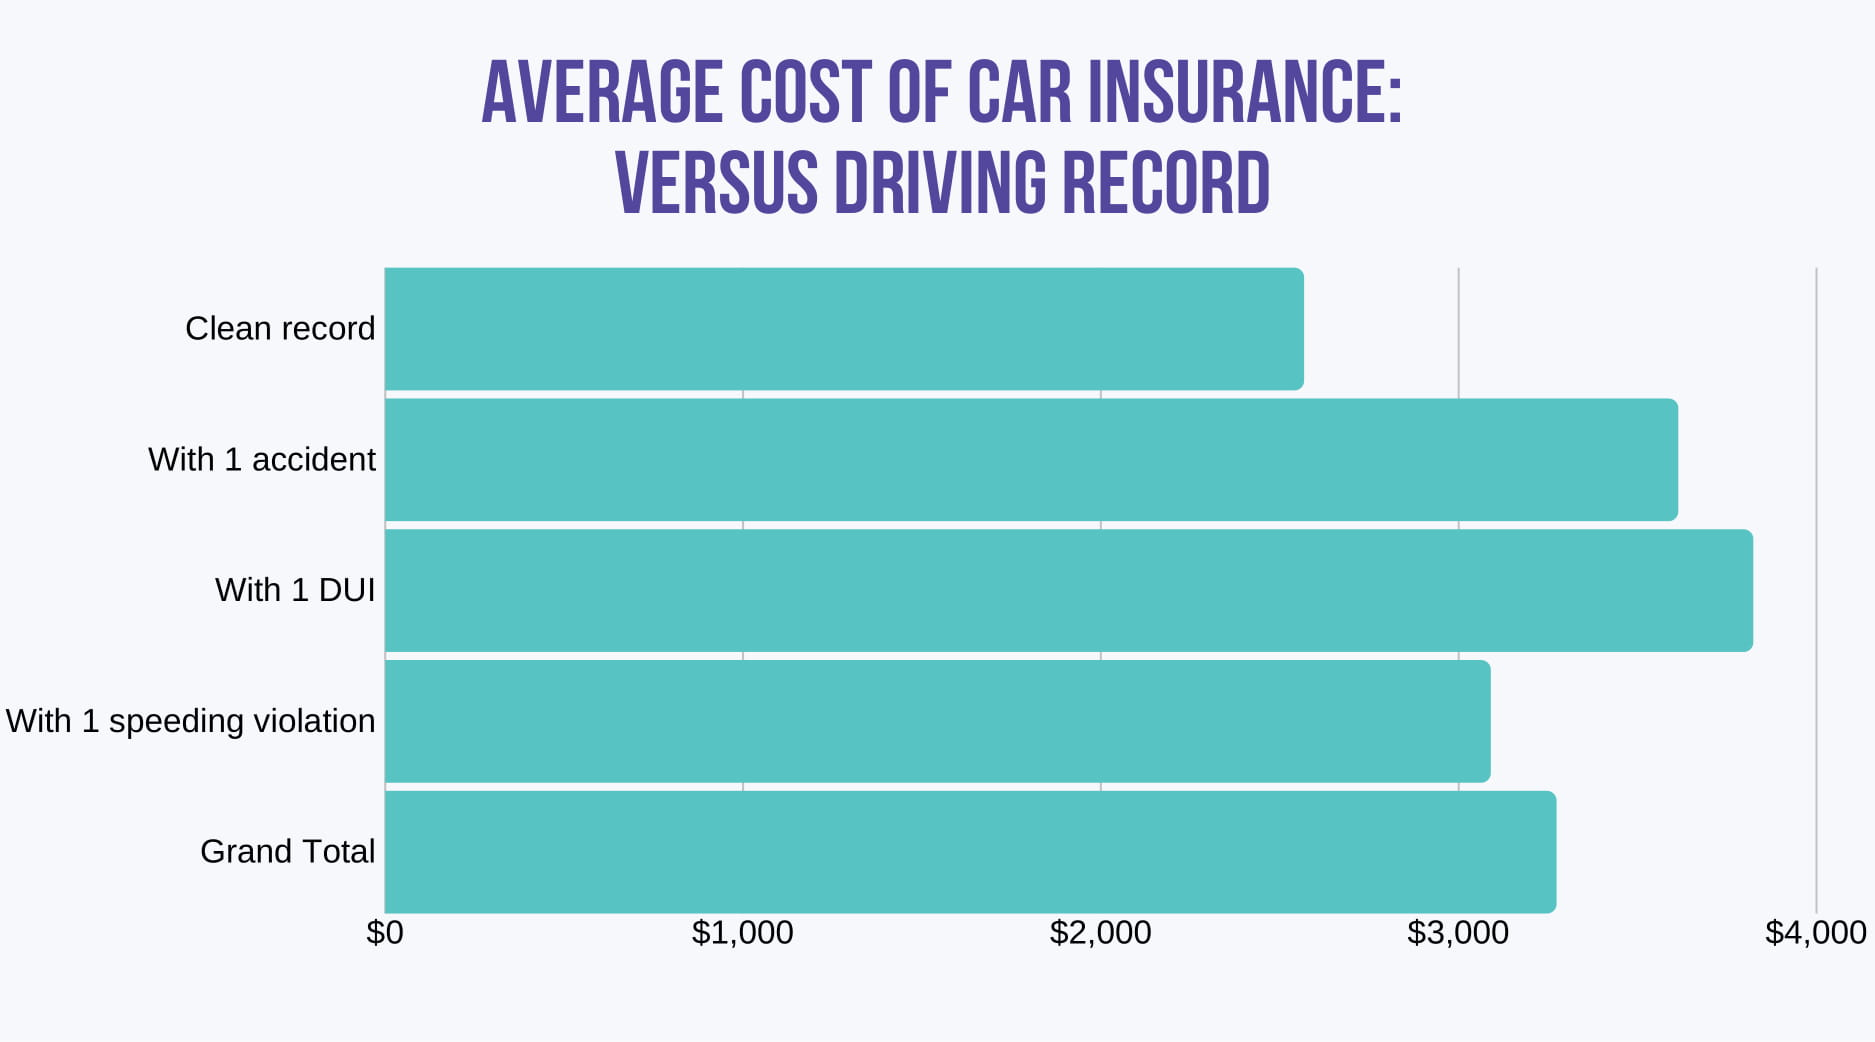 AVERAGE COST OF CAR INSURANCE VERSUS DRIVING RECORD